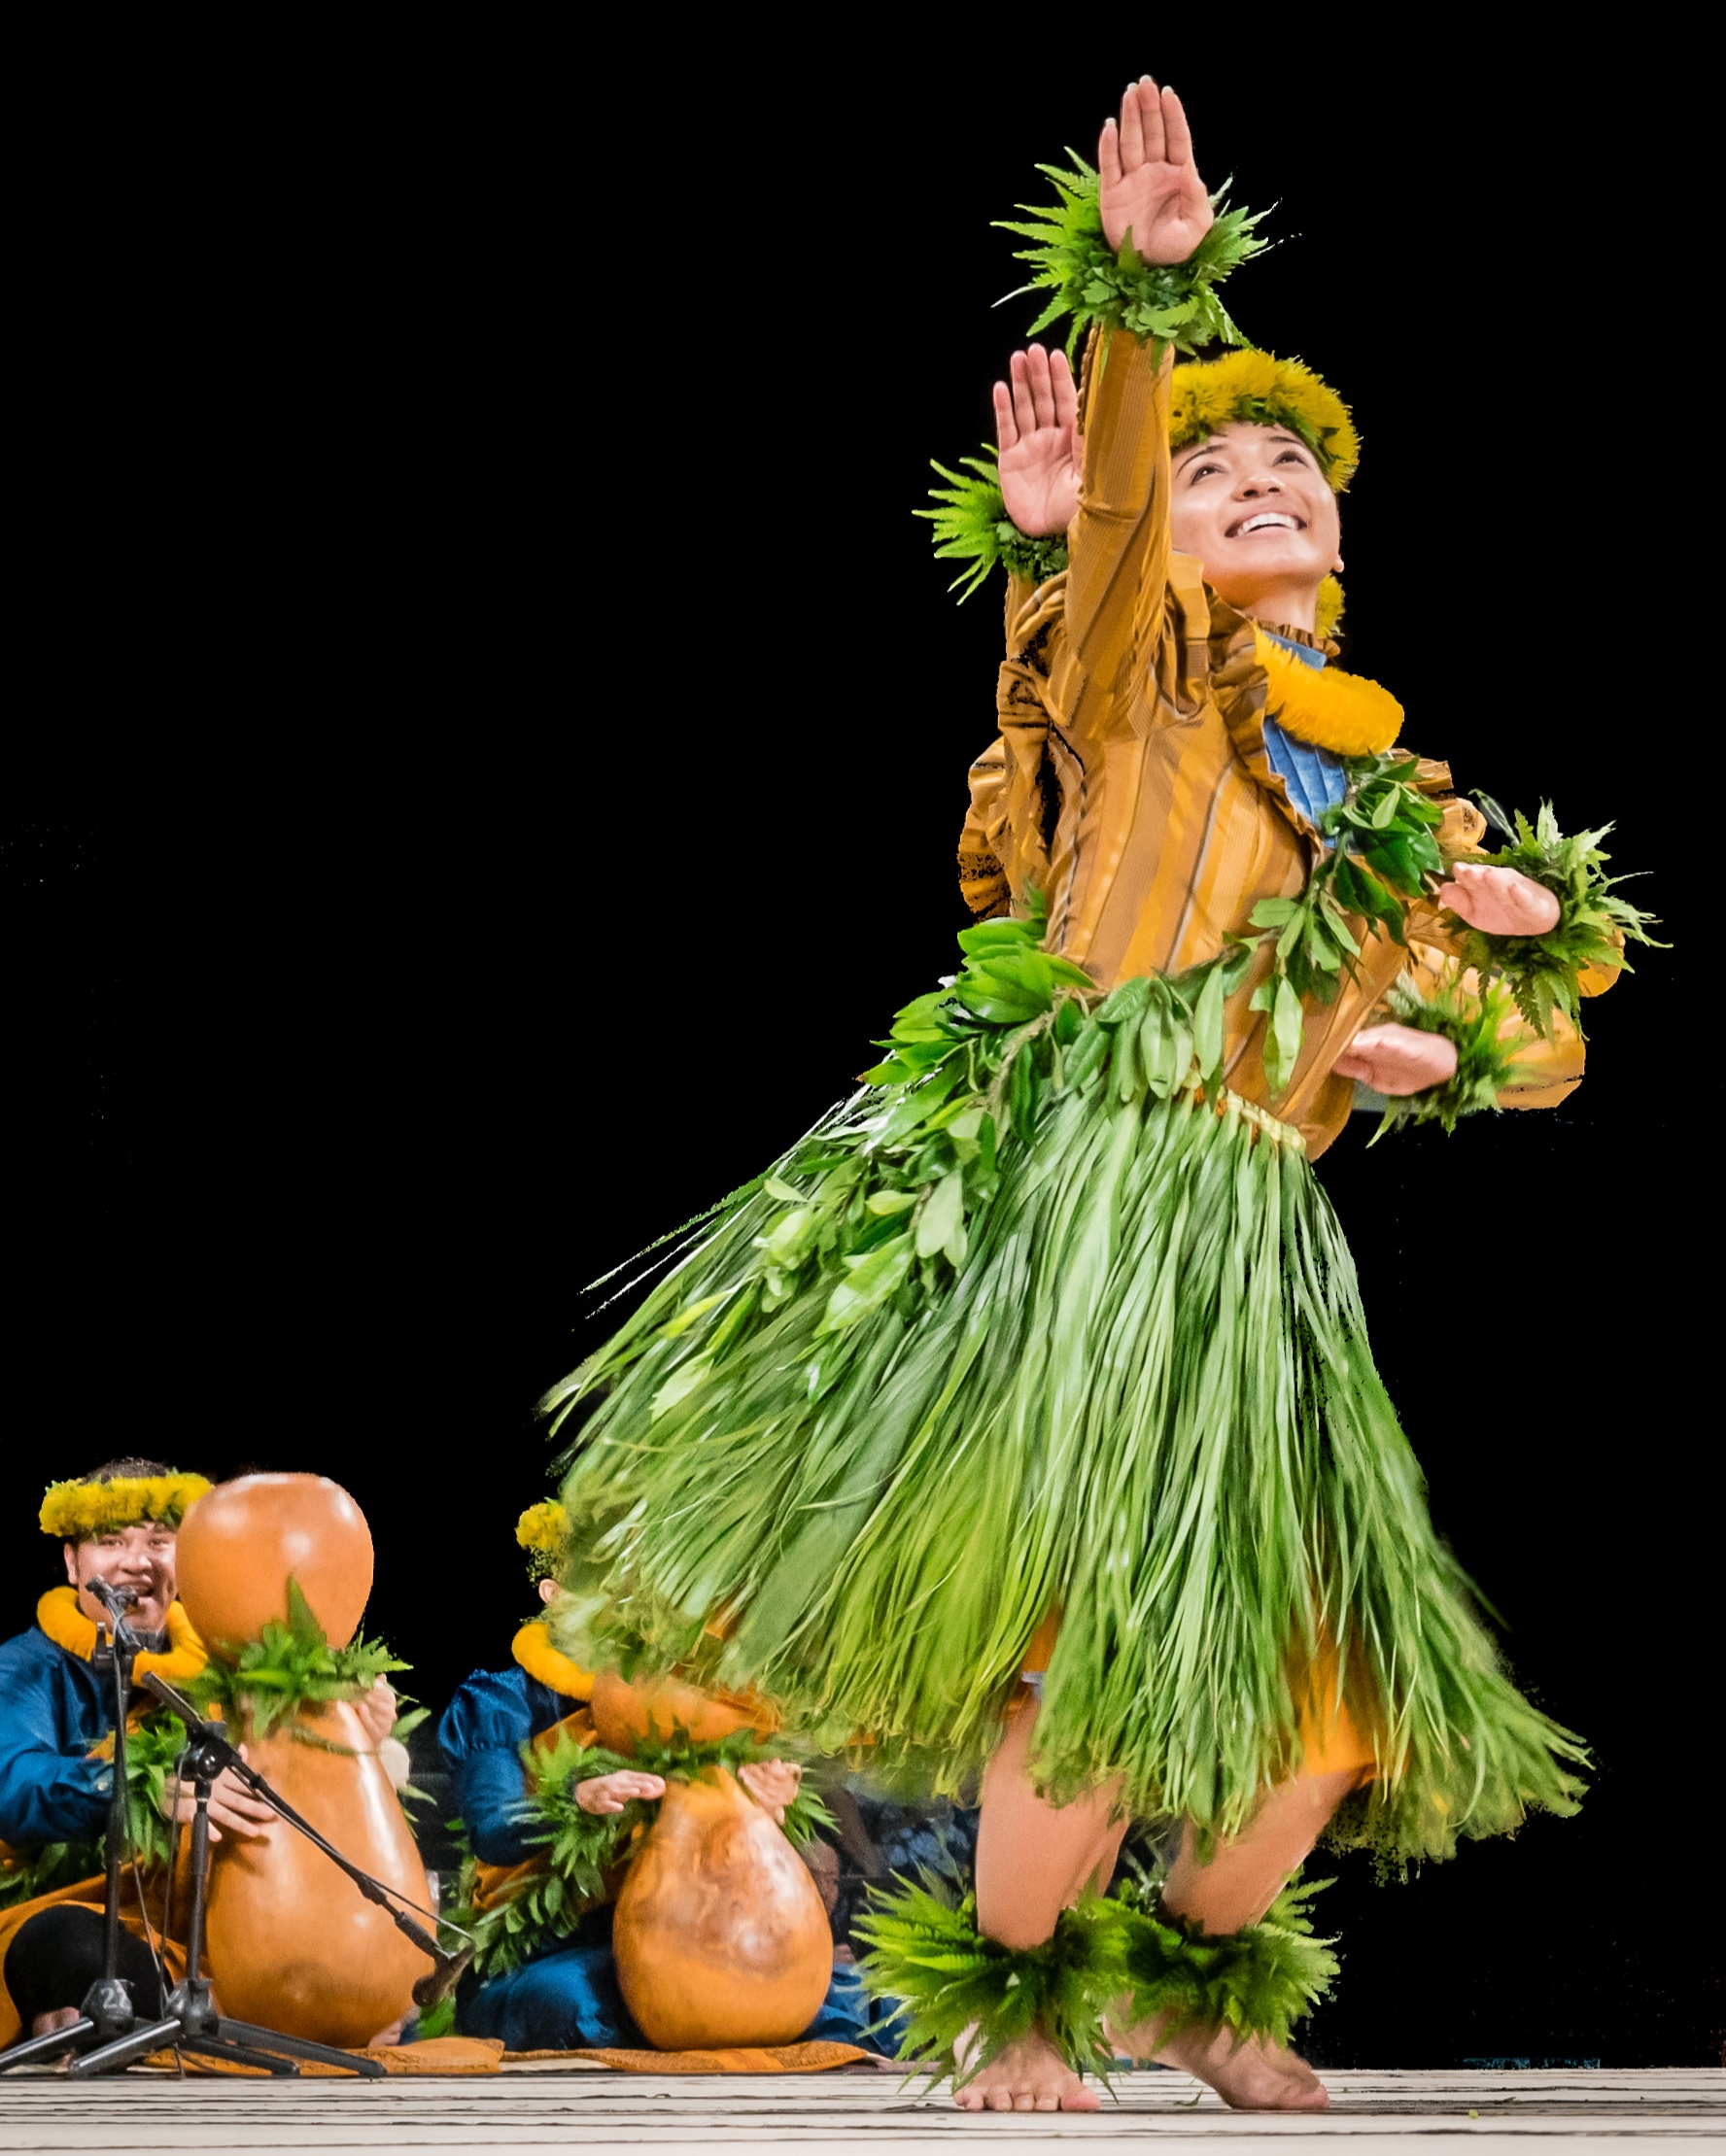 Halau-Manaola-Merrie-Monarch-Hula-Festival-EMotion-Galleries-Ranae-Keane-Photography-Destination-Wedding-Big-Island-Hawaii_014_180406_.jpg